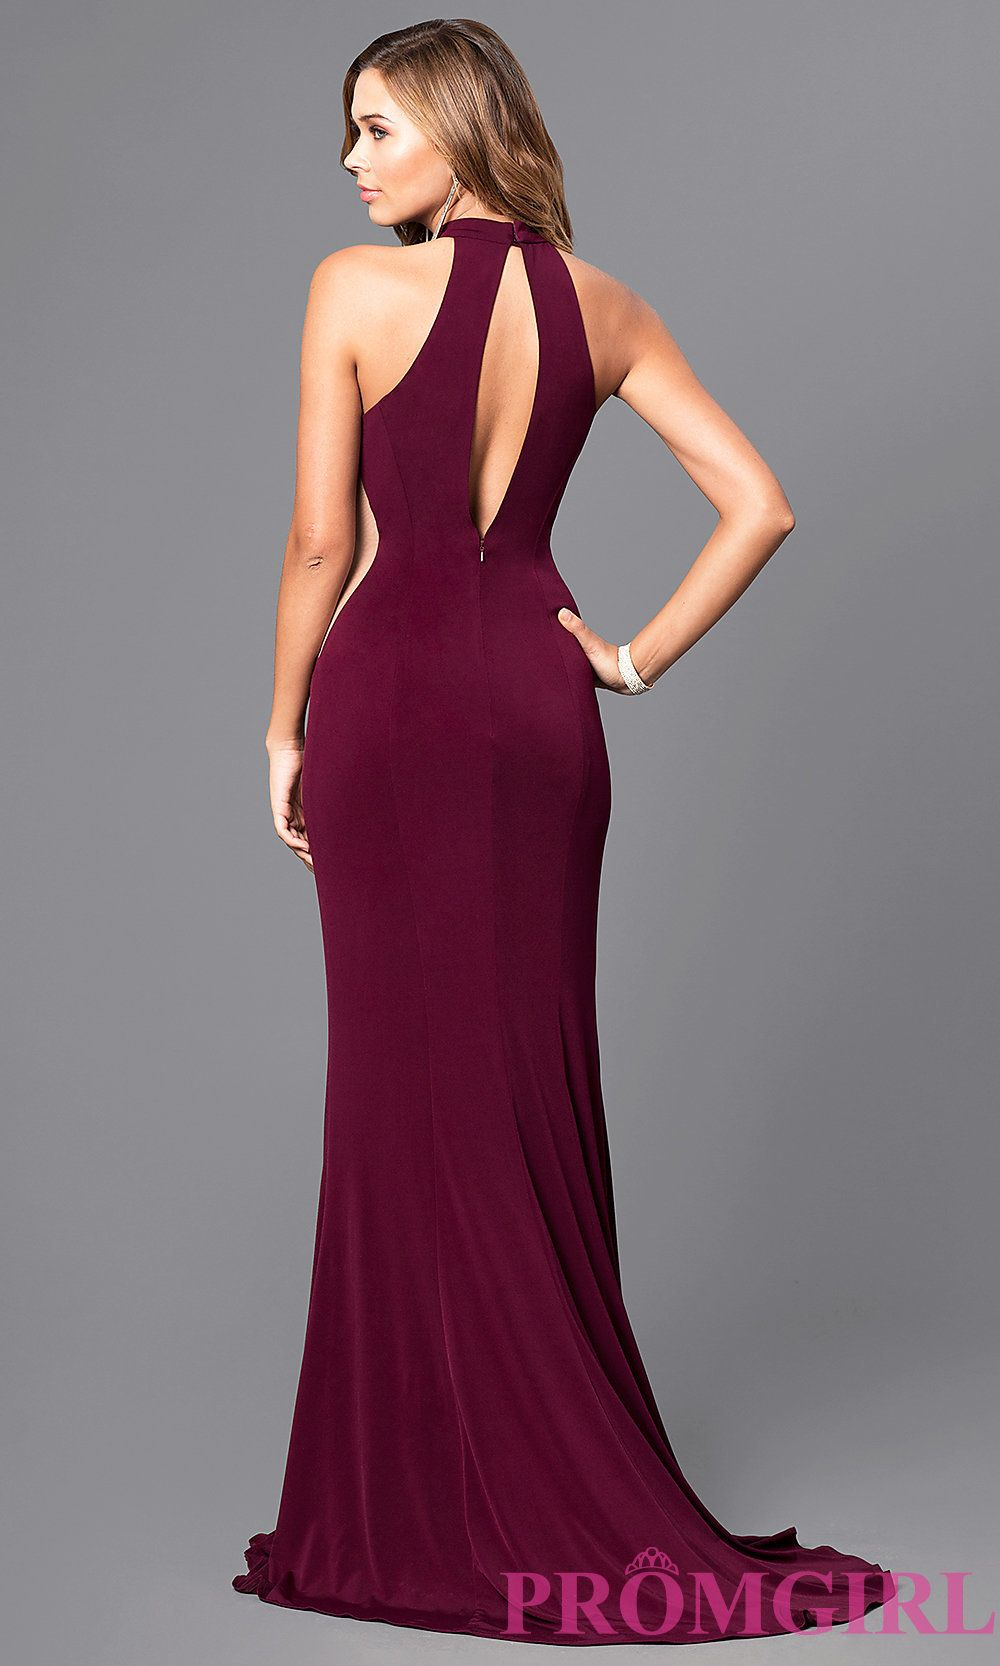 Style fa back image occasion dresses pinterest side cuts